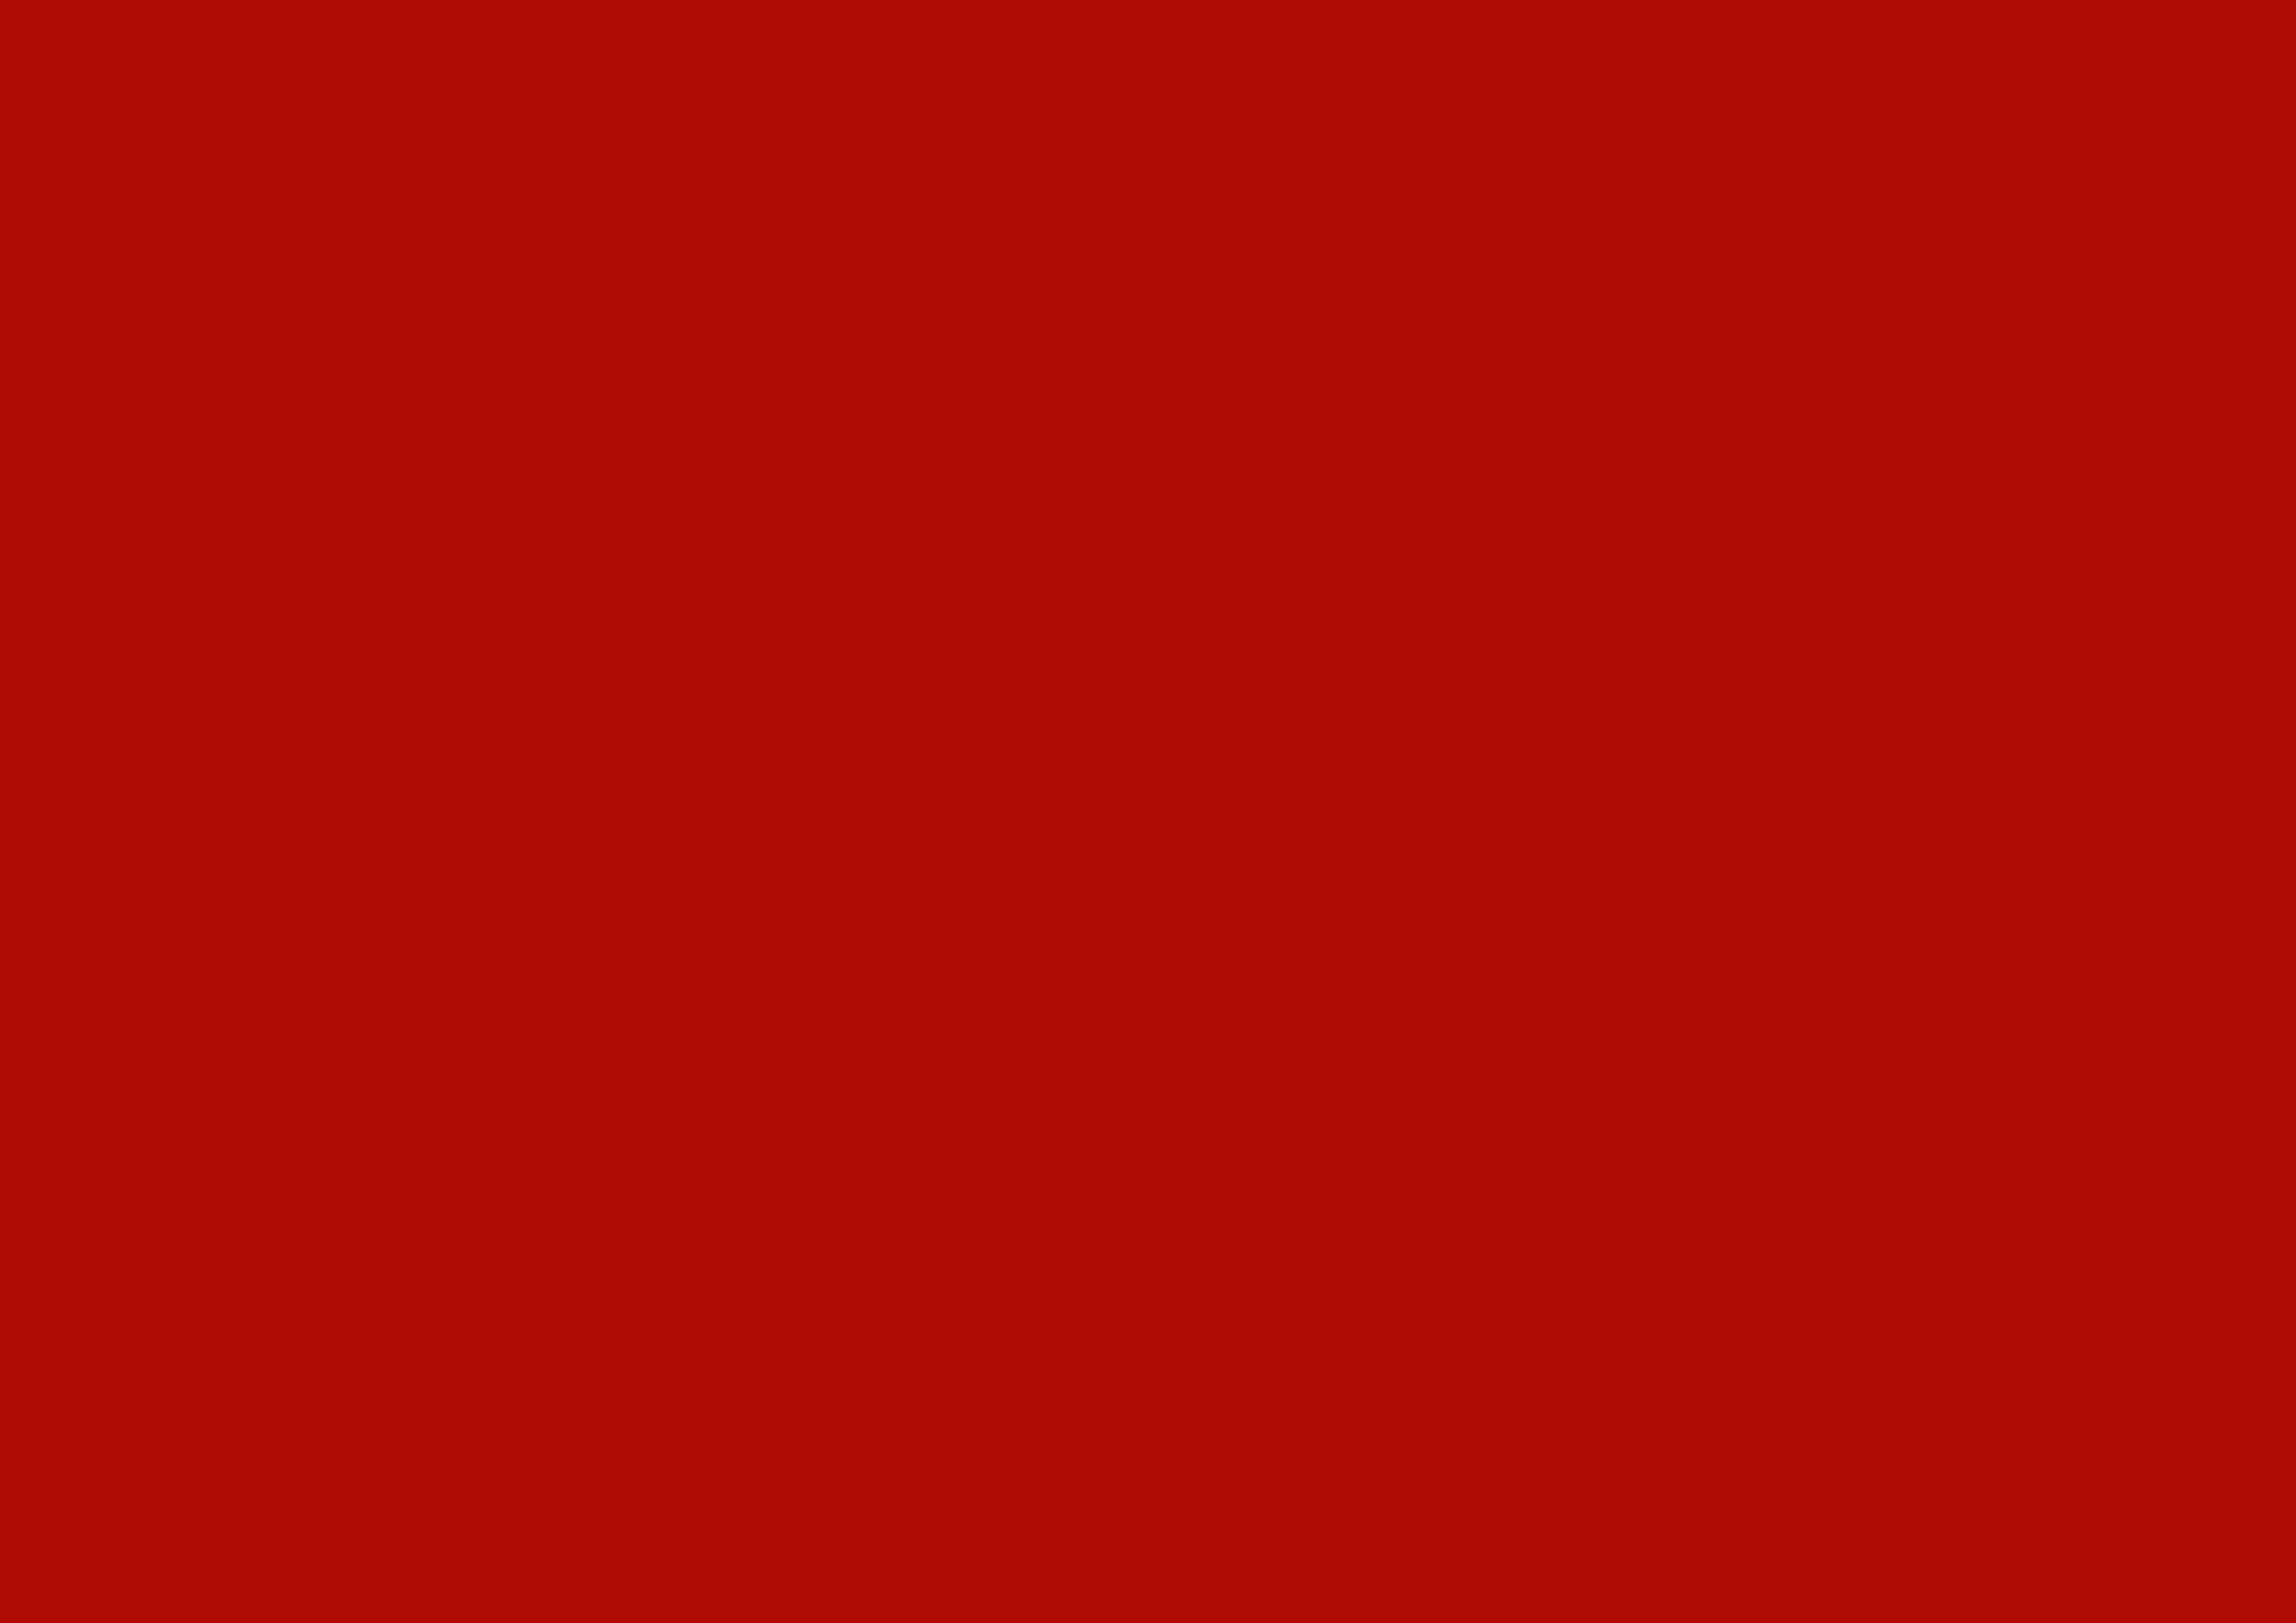 3508x2480 Mordant Red 19 Solid Color Background